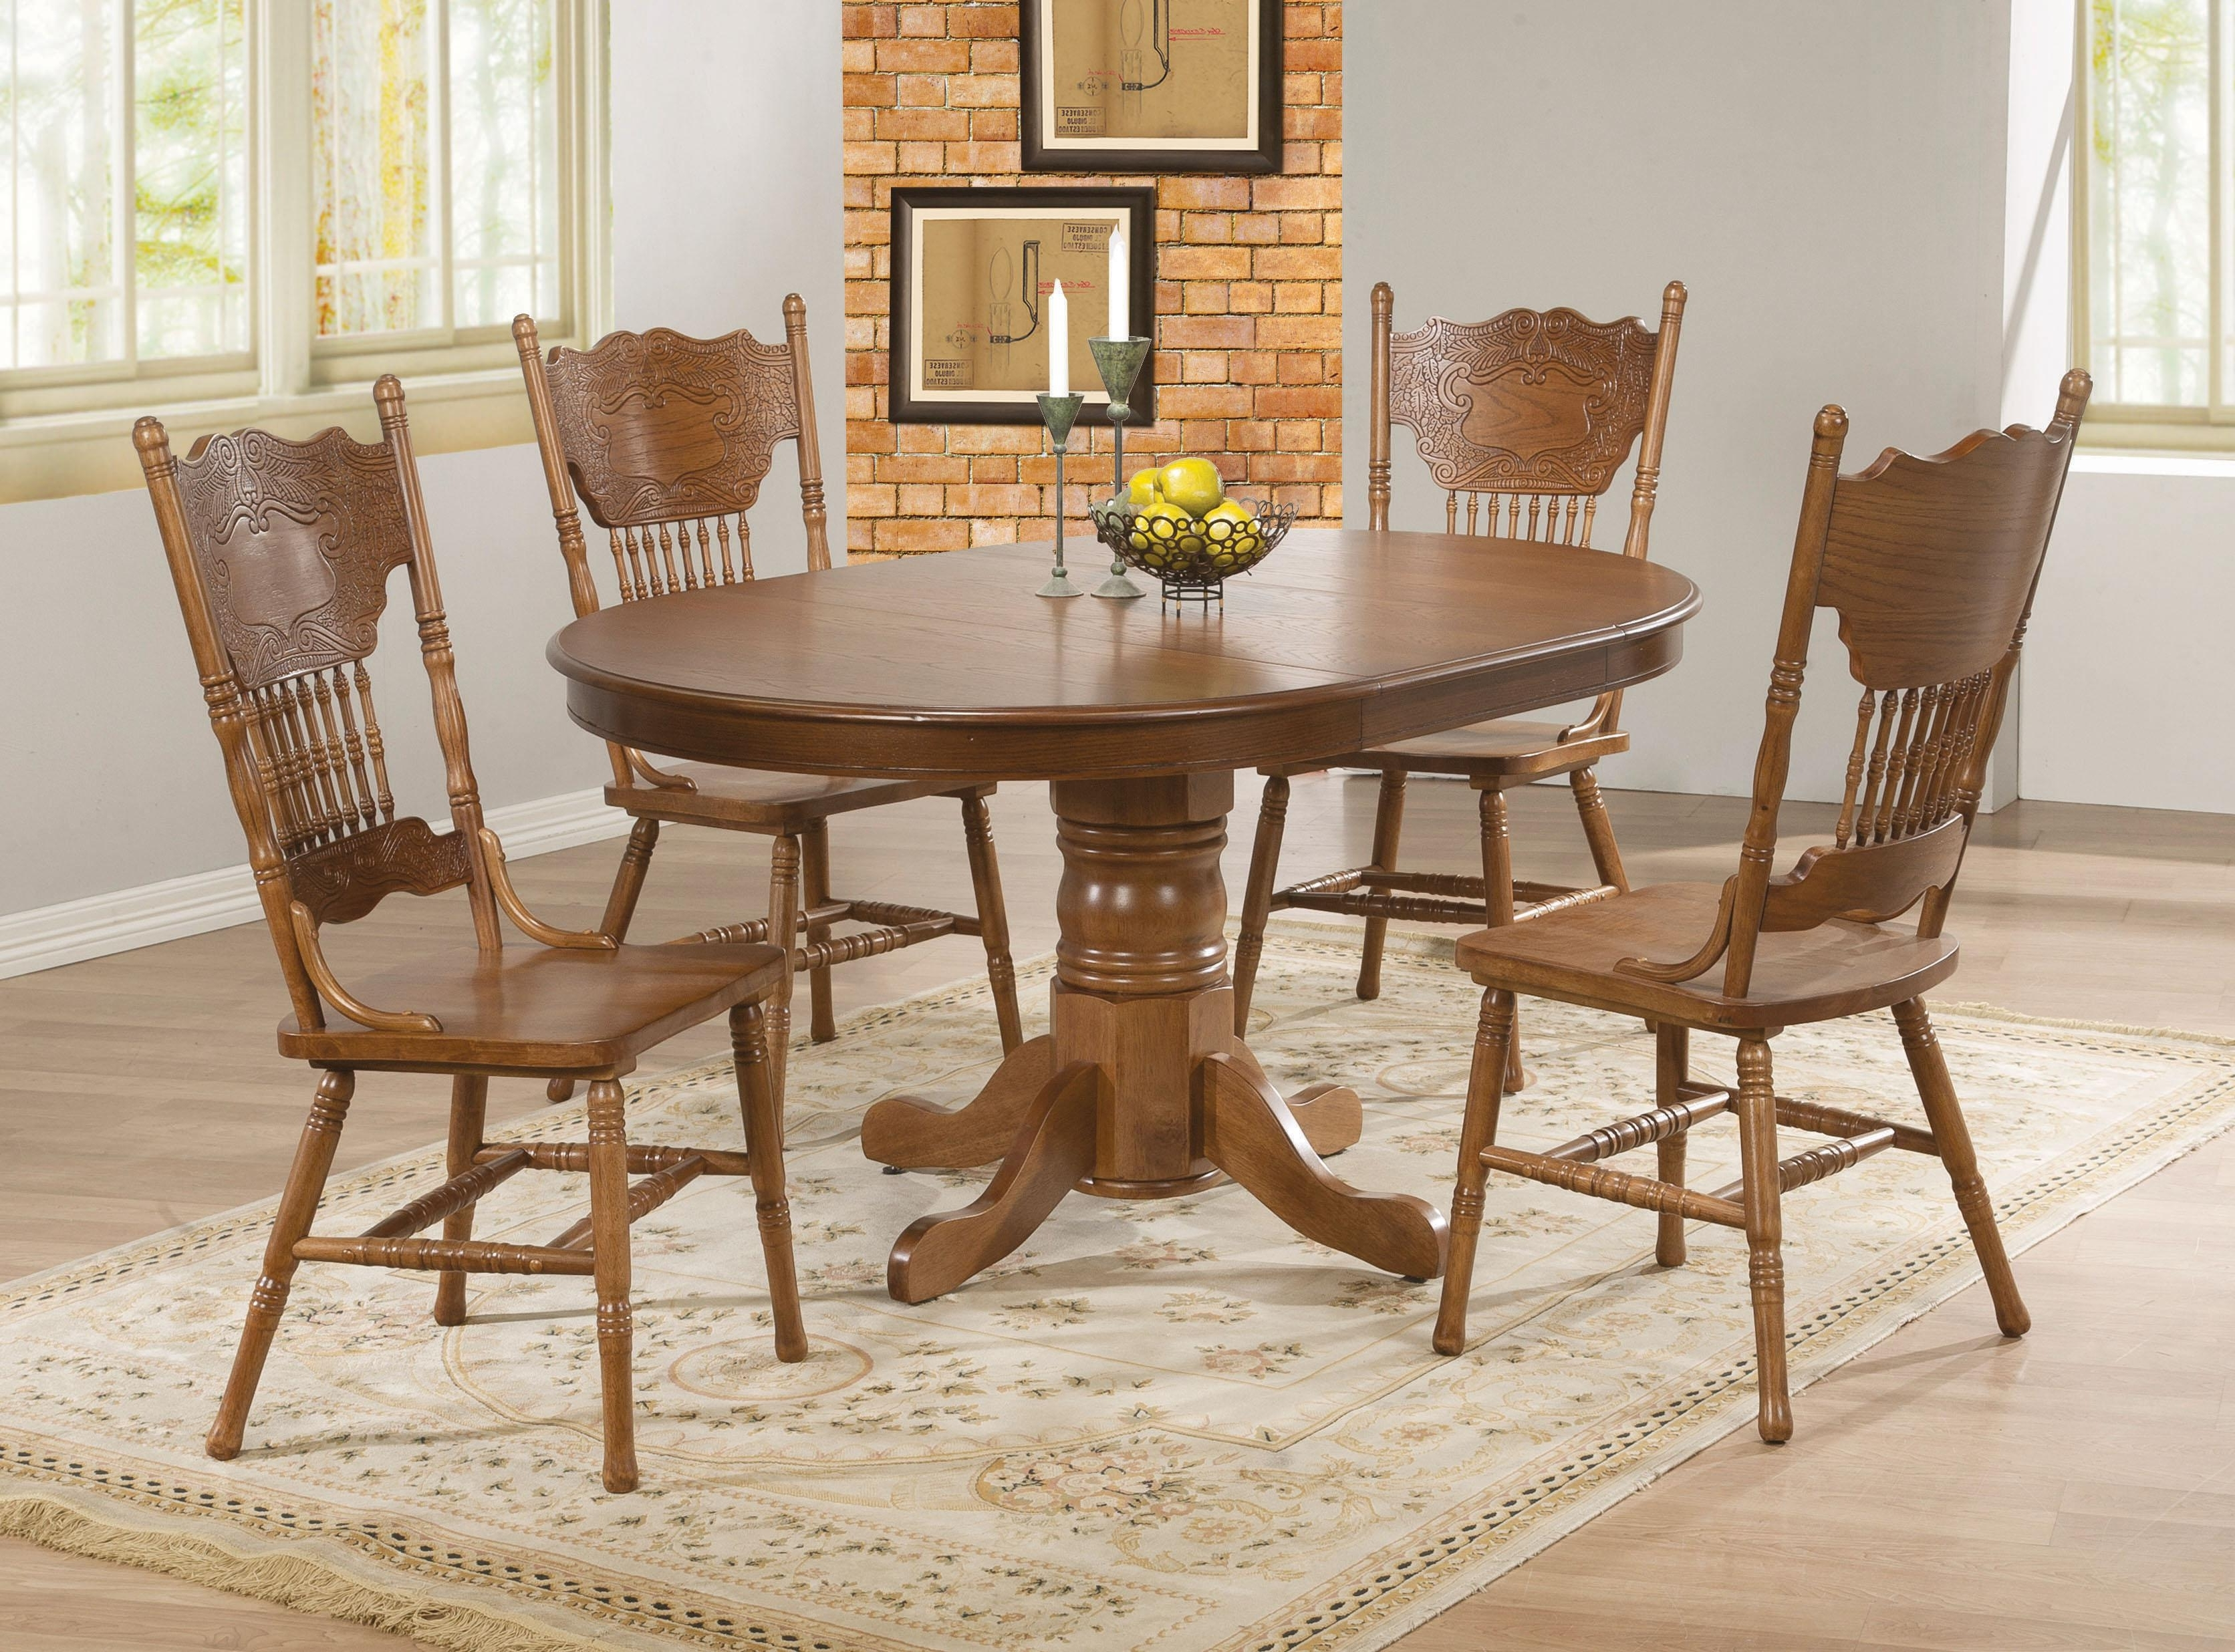 Oak And Glass Dining Tables Sets Regarding Favorite Round Dining Table Htm Oak Oval Dining Table And Chairs As Glass (View 21 of 25)